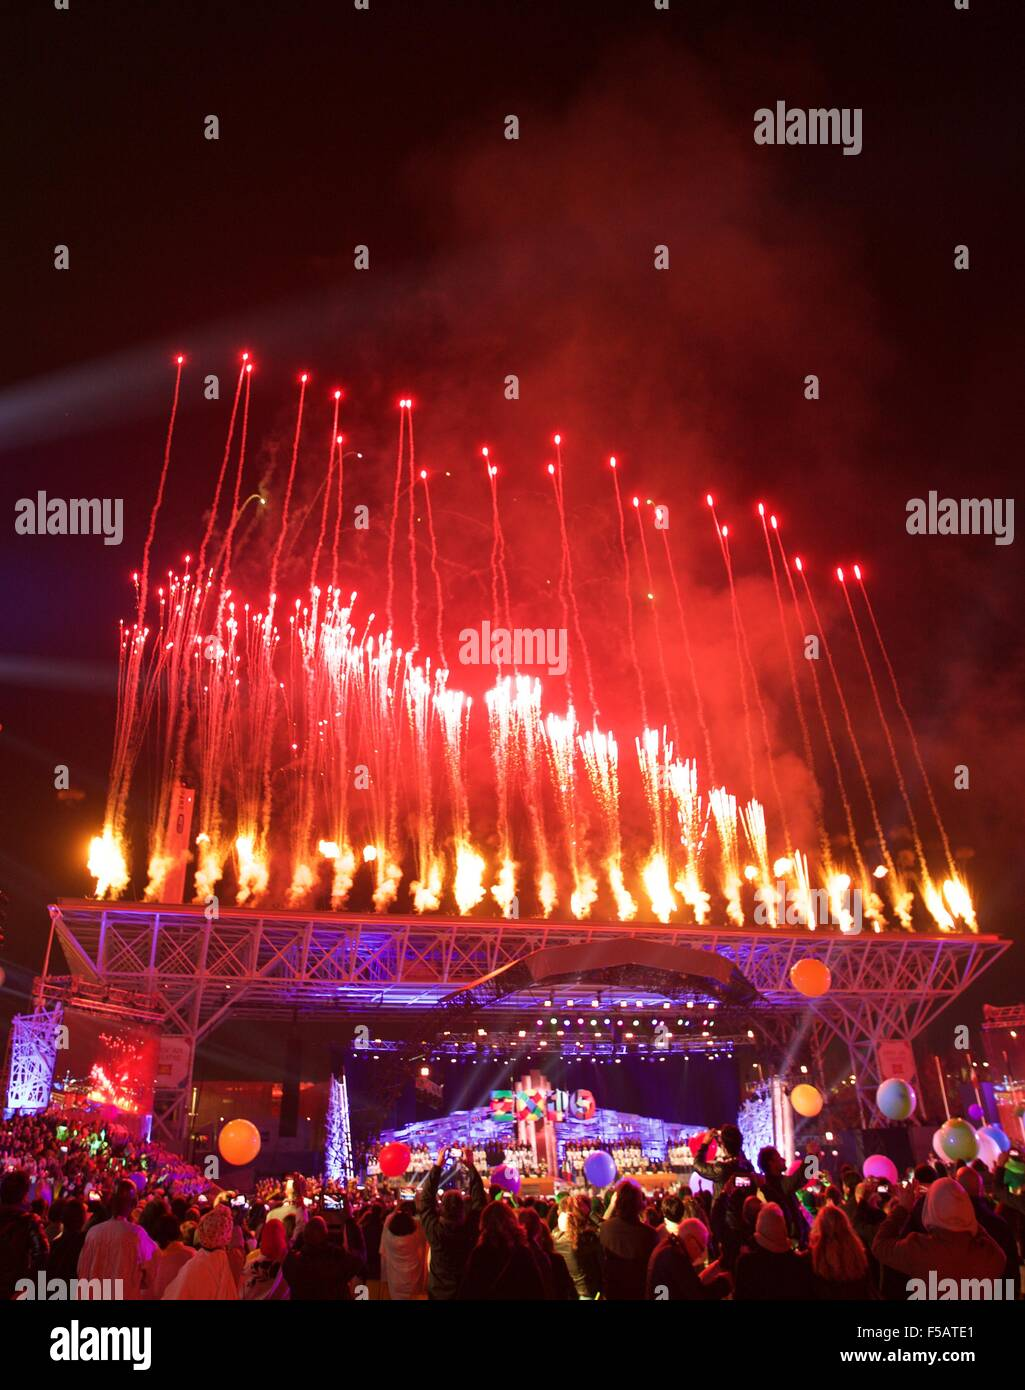 Milan, Italy. 31st Oct, 2015. Fireworks are seen during the closing ceremony of Expo Milano 2015 in Milan, Italy, - Stock Image